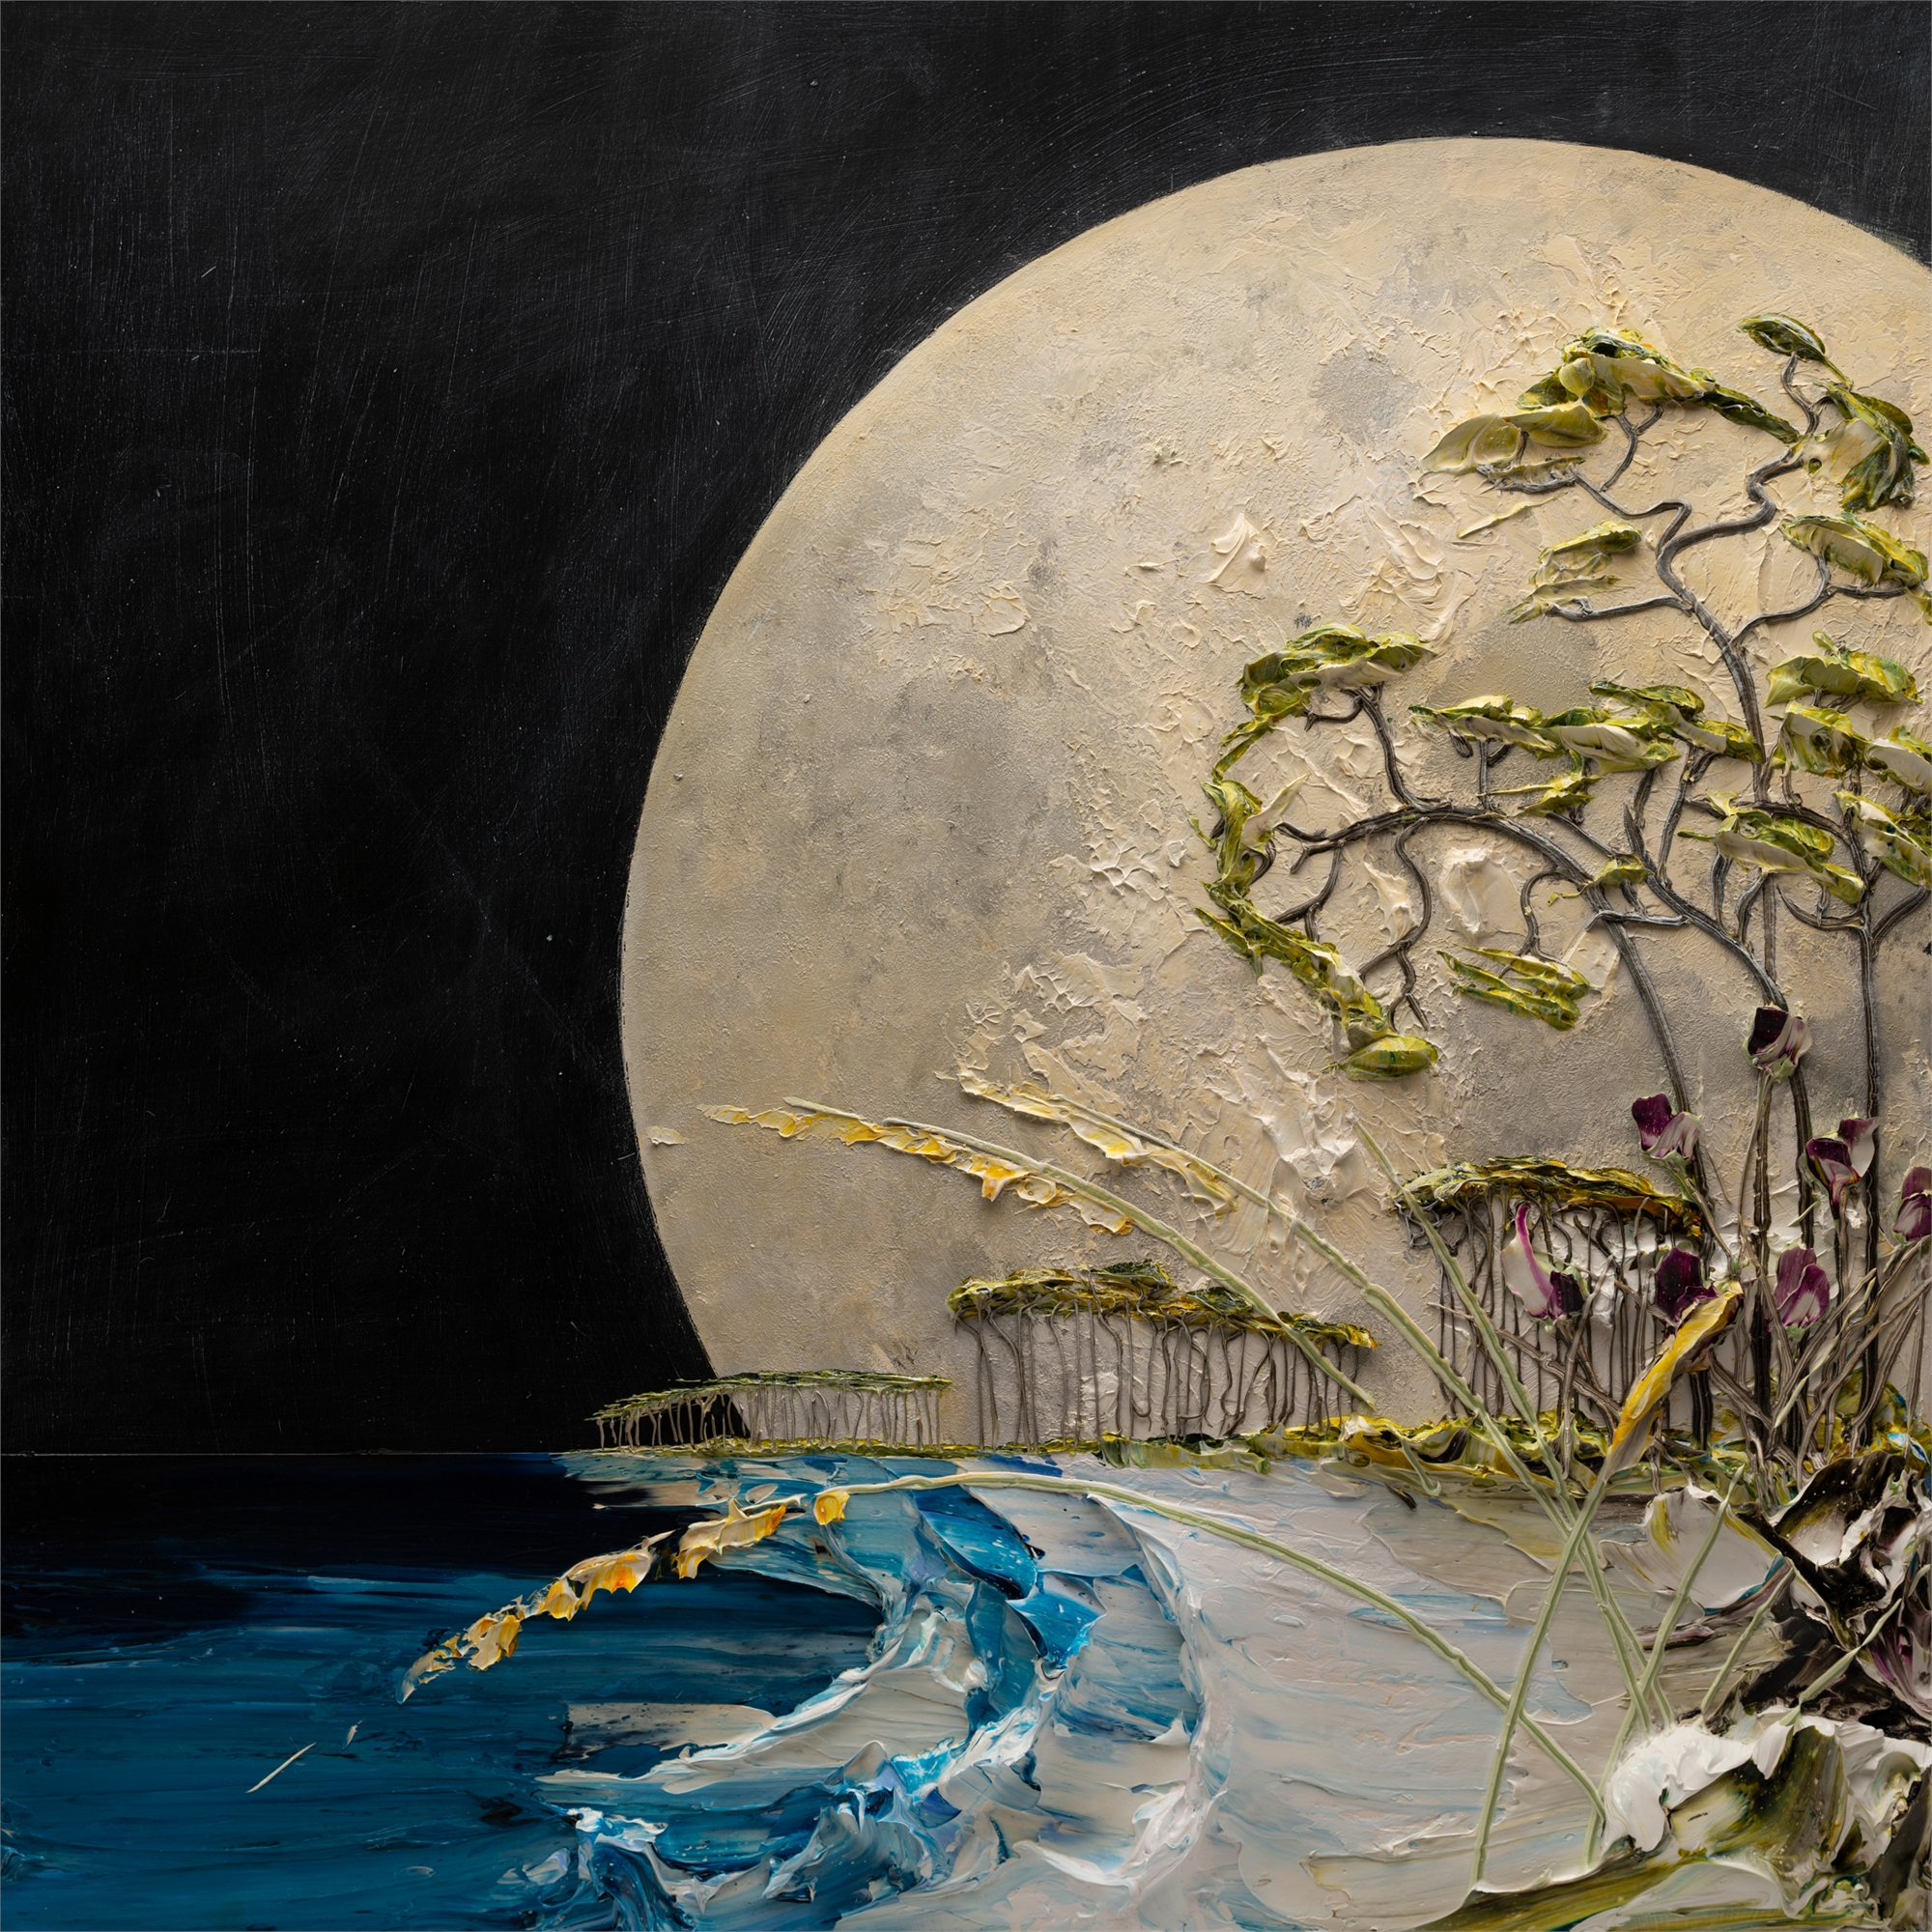 (SOLD) NIGHT MOONSCAPE-MS-48x48-2019-224 by JUSTIN GAFFREY